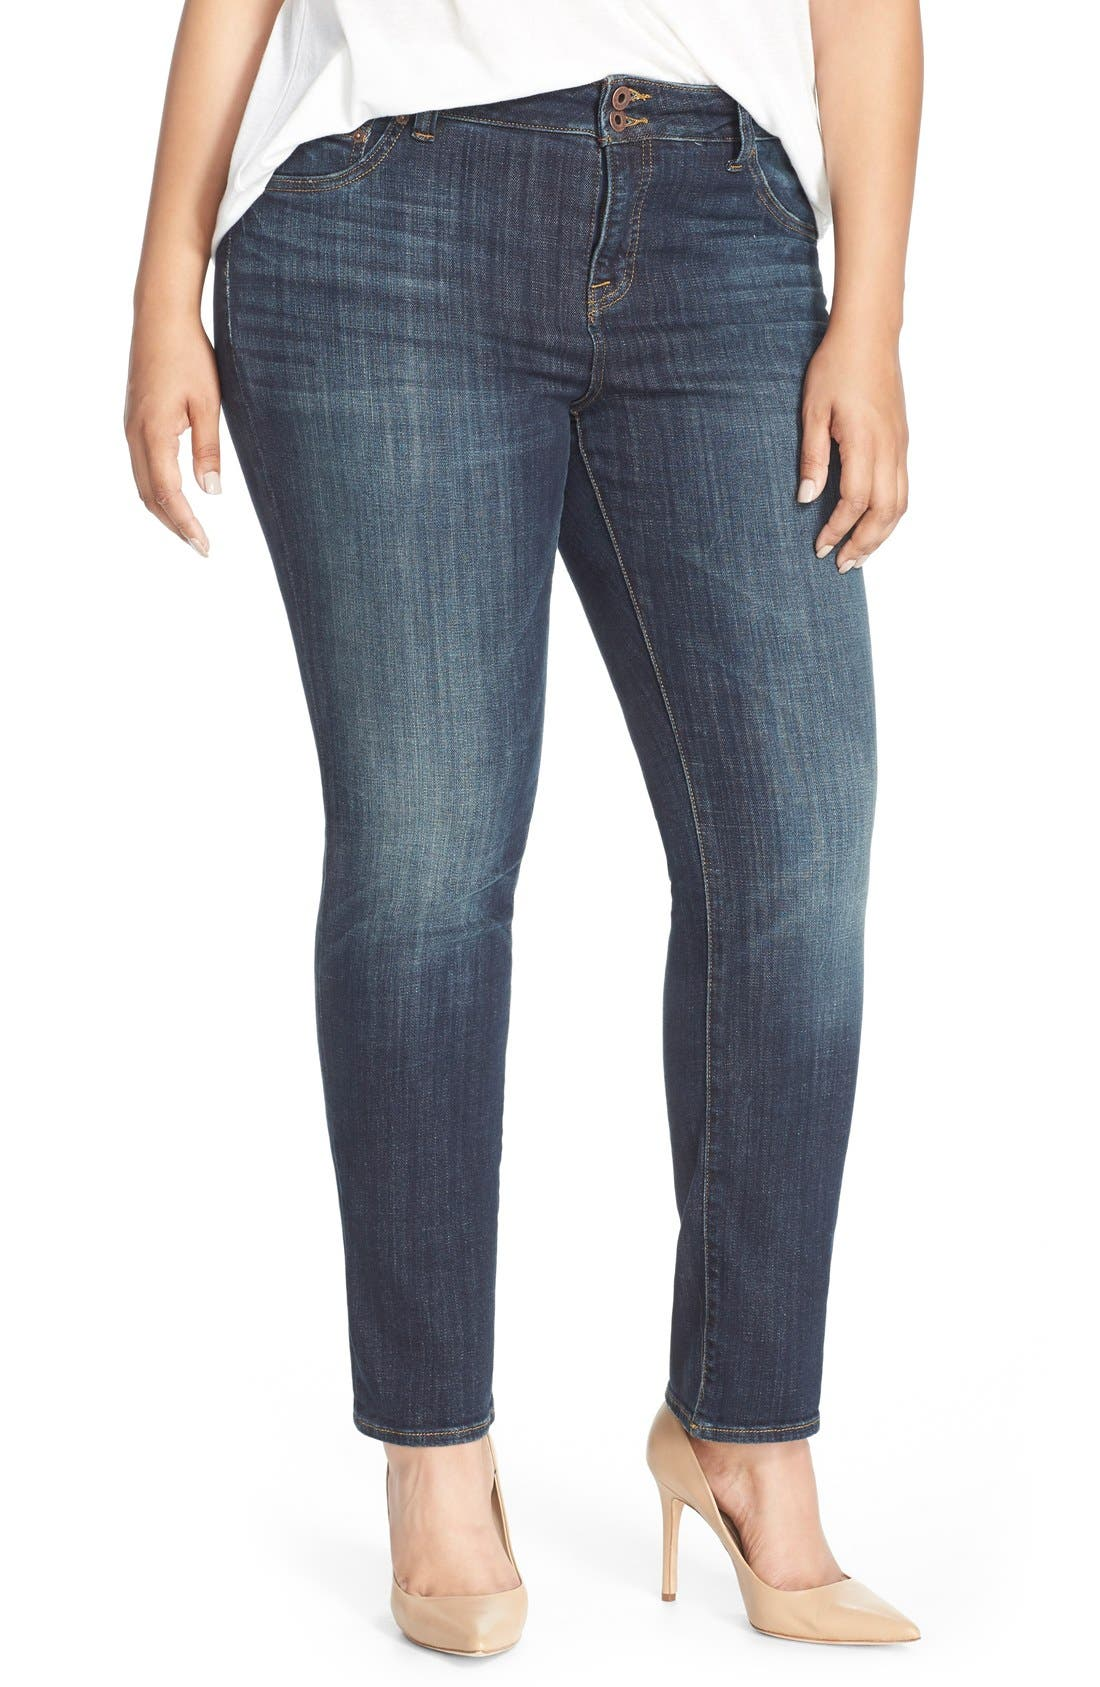 Alternate Image 1 Selected - Lucky Brand 'Emma' Stretch Straight Leg Jeans (Plus Size)